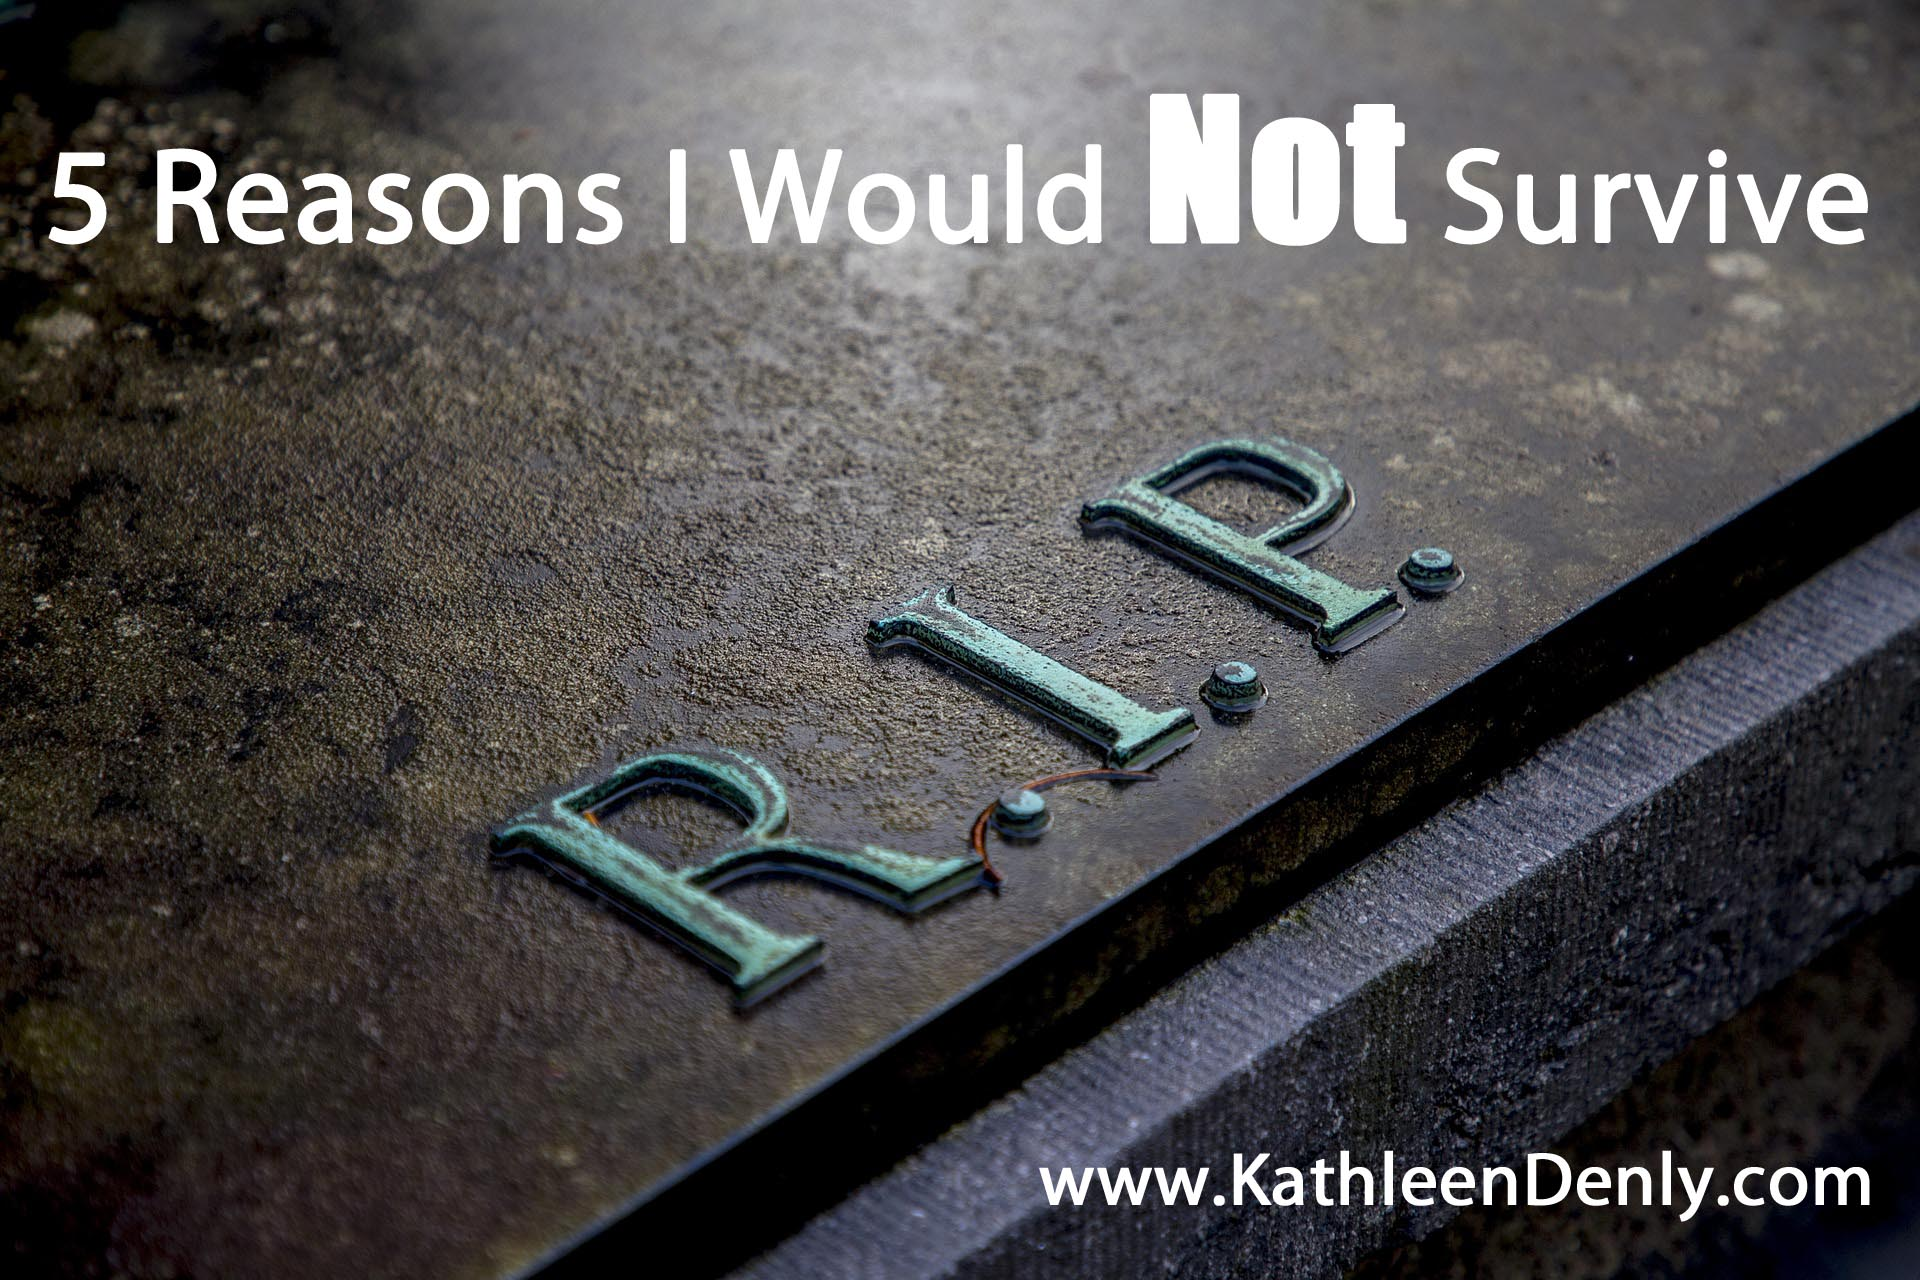 5 Reasons I would NOT survive